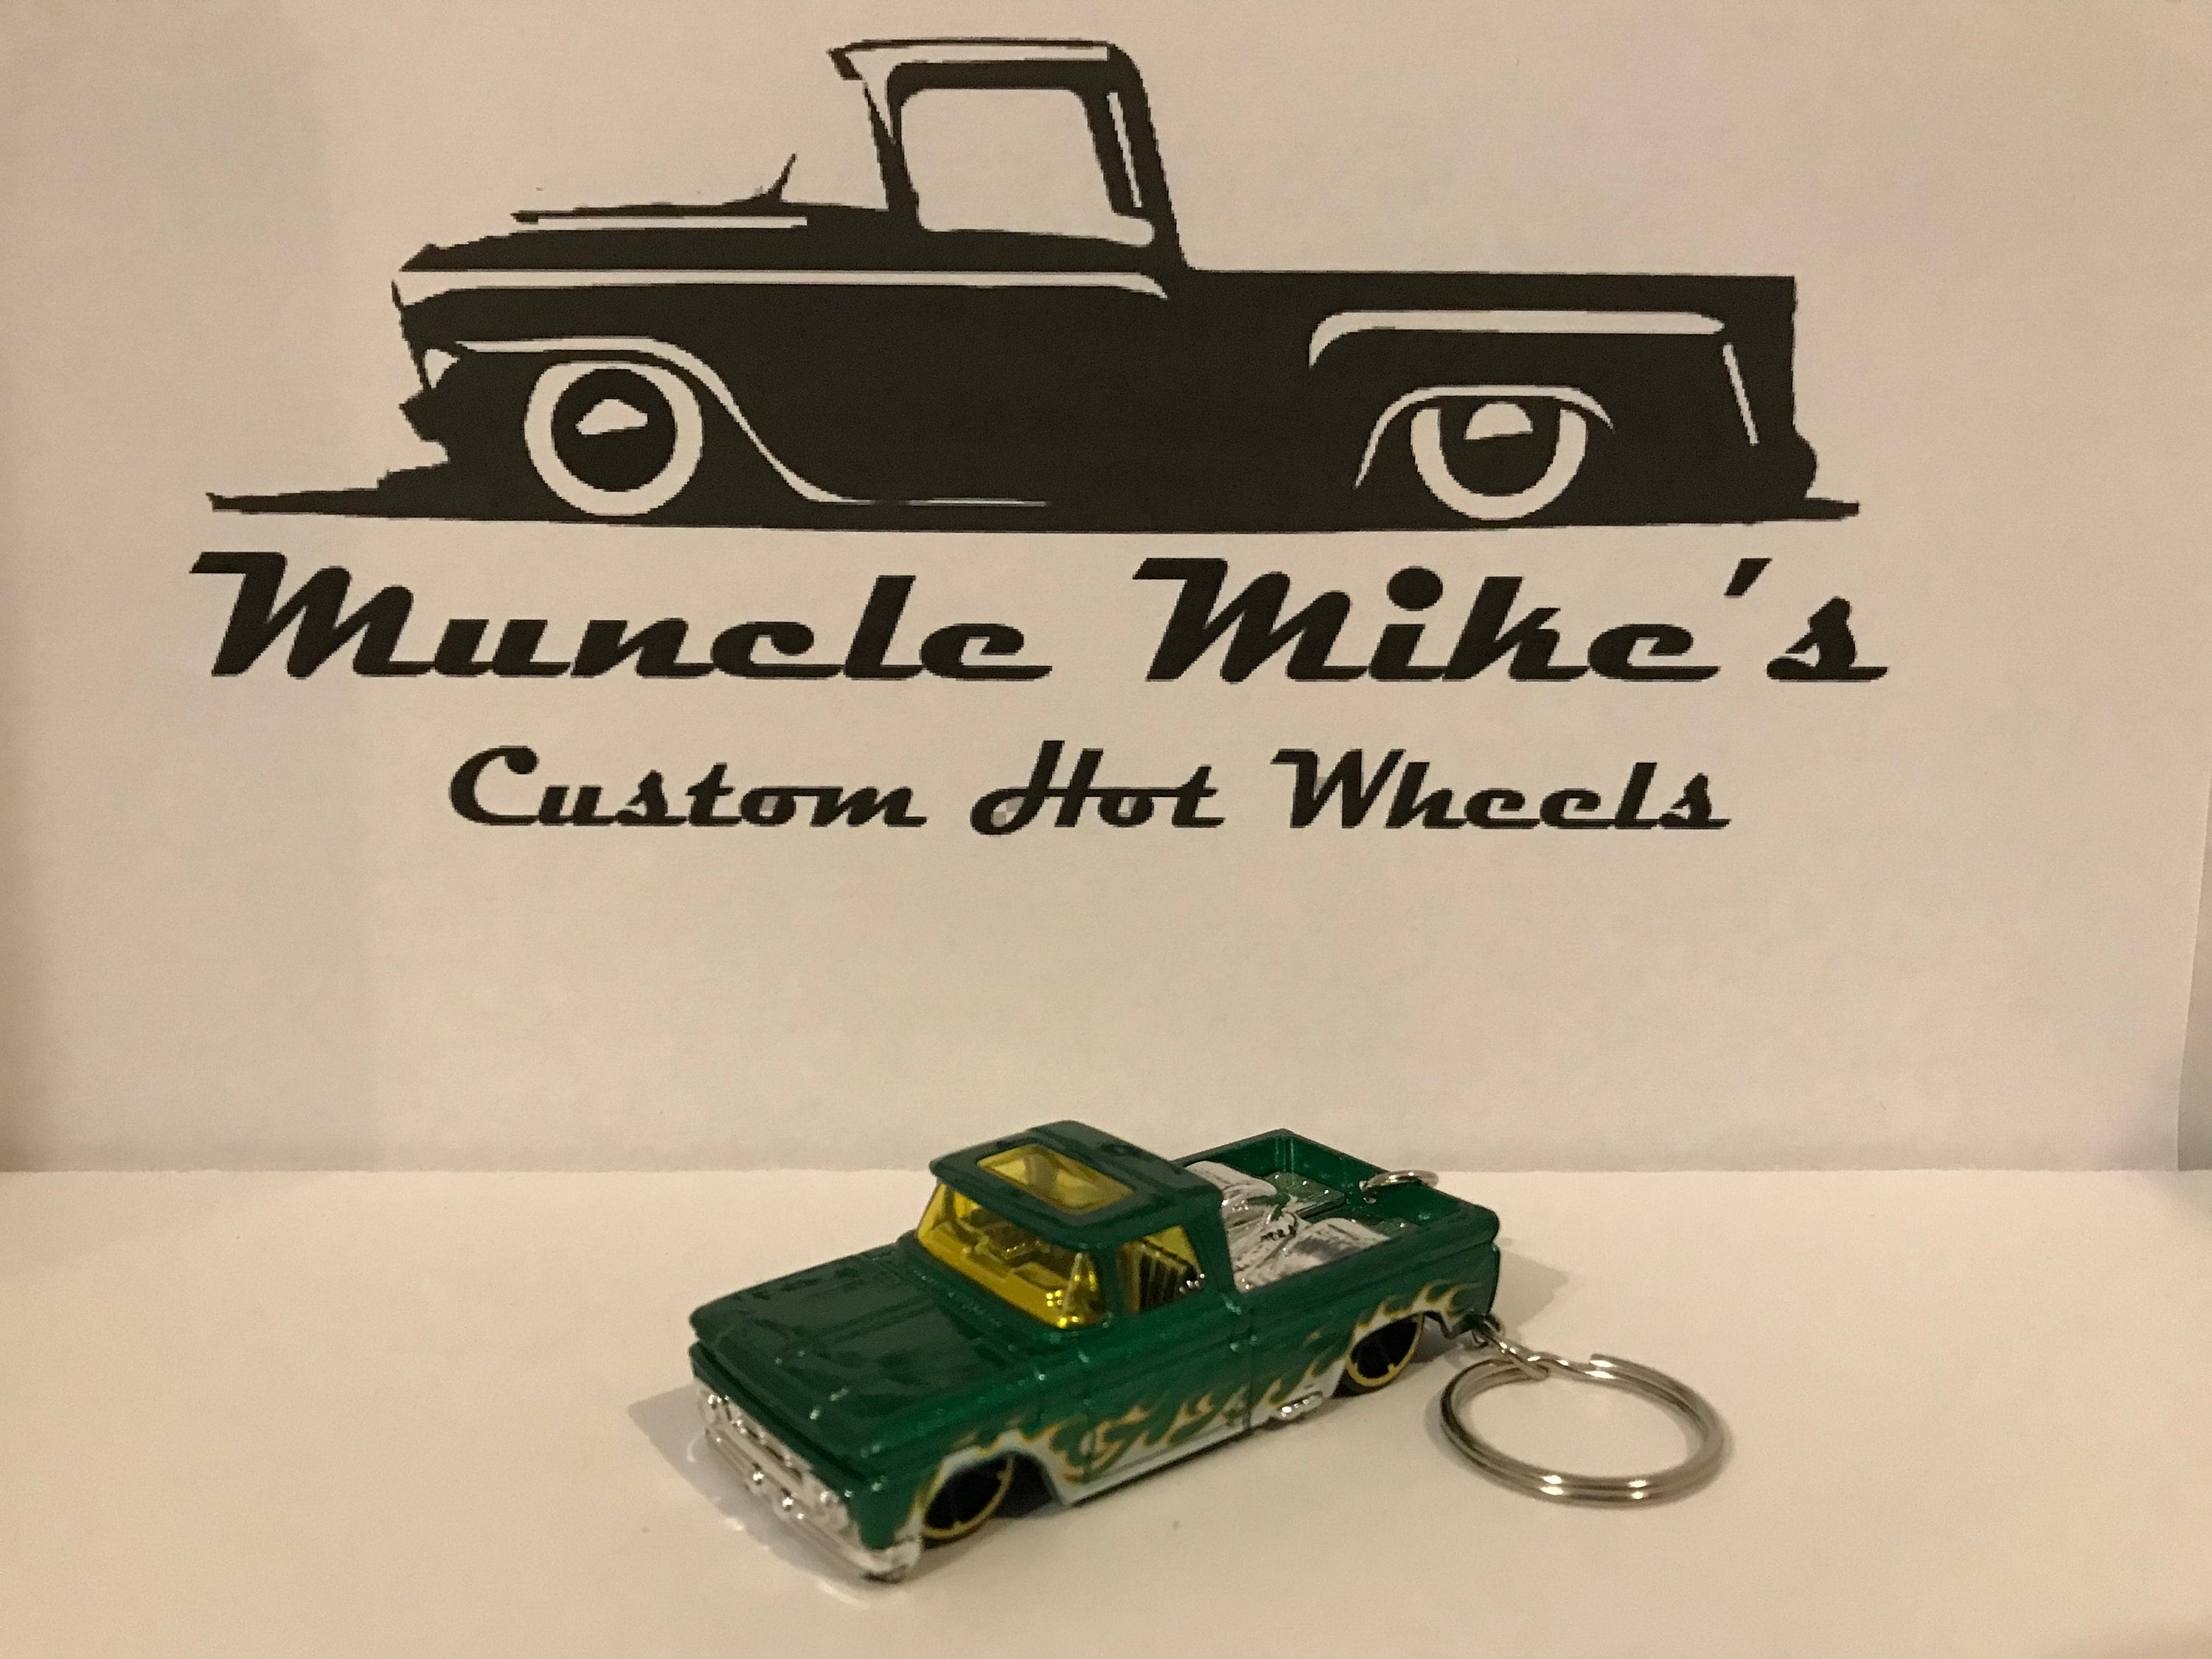 Custom Hot Wheels green with flames 1962 Custom '62 Chevy pickup truck key chain keychain